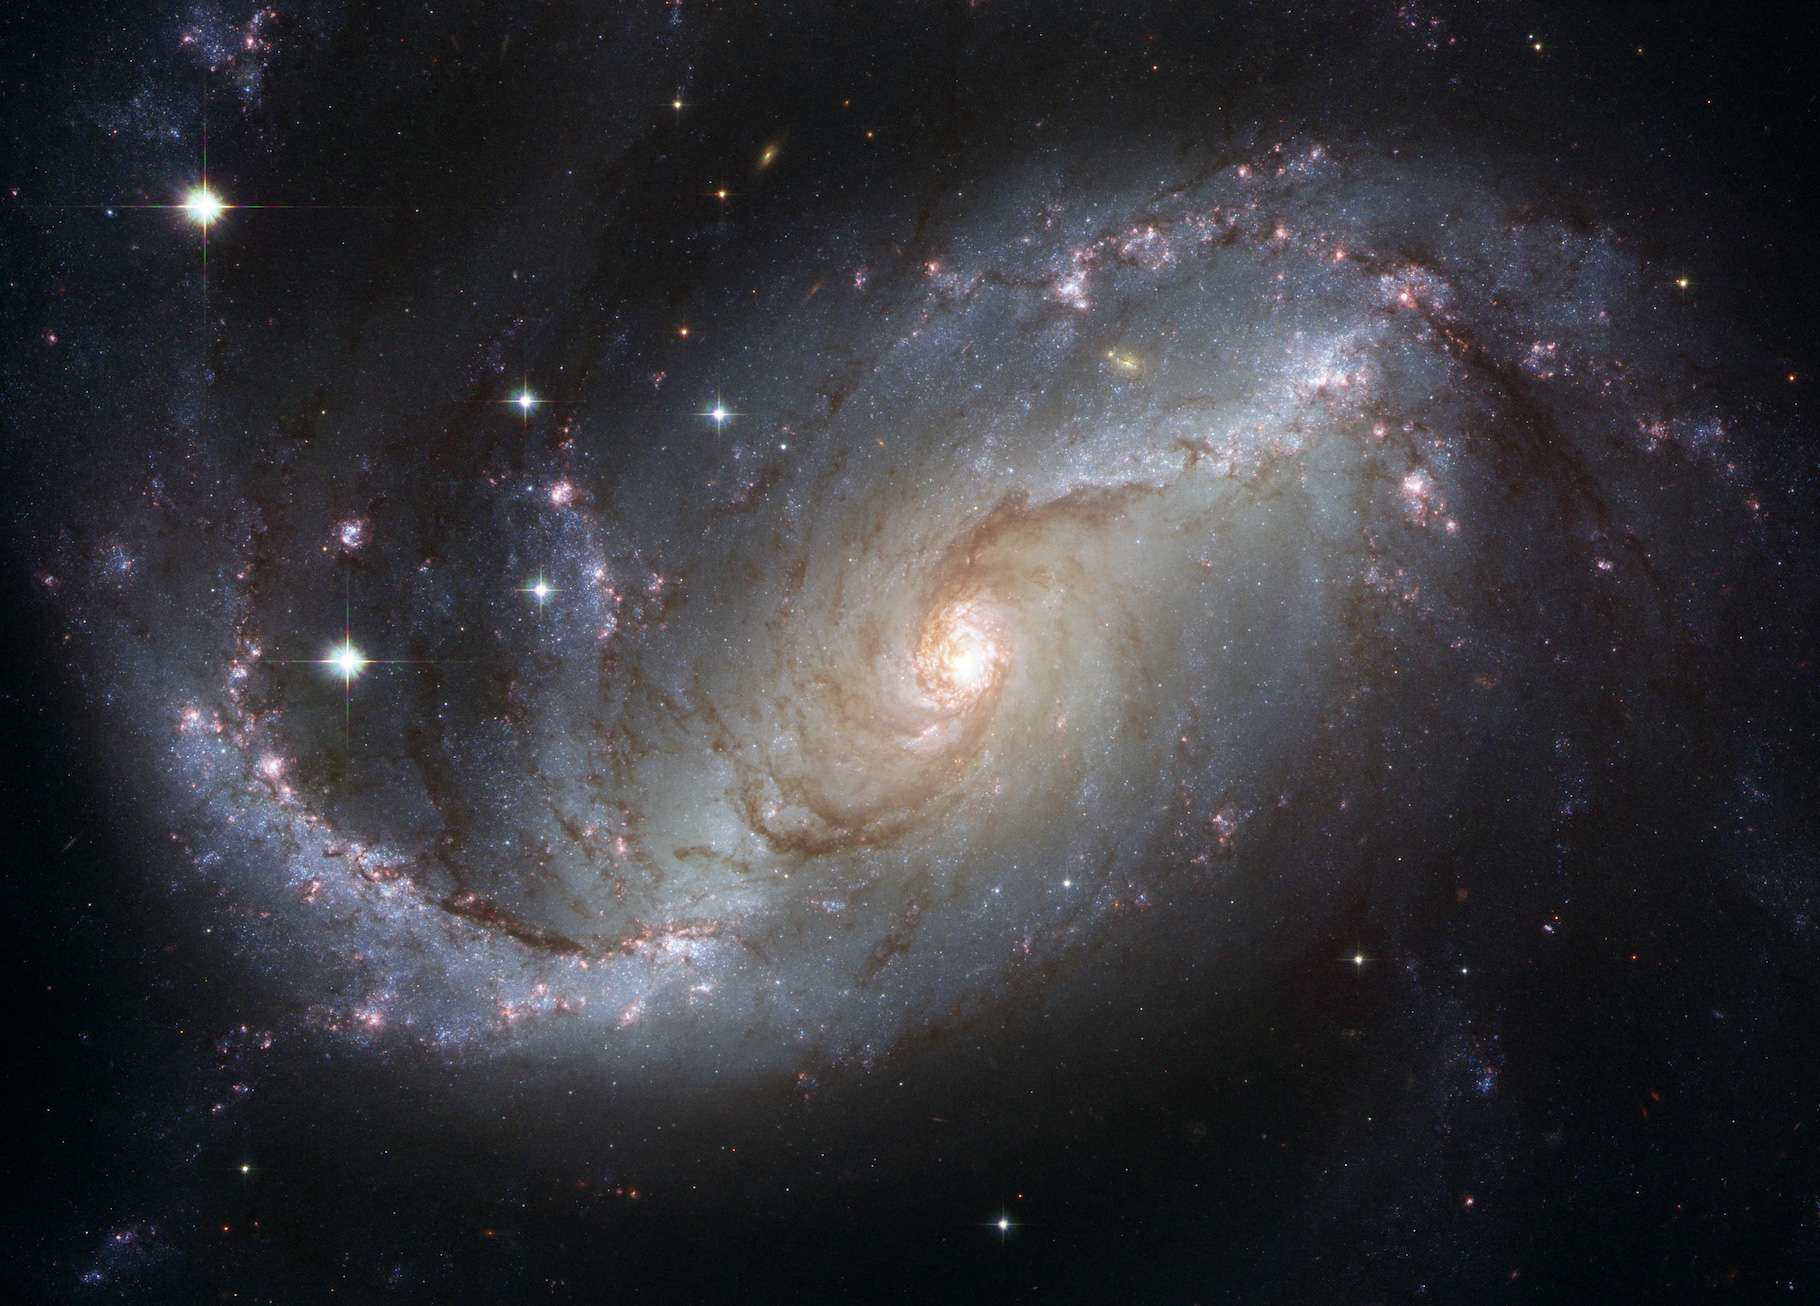 Cette image composite de la galaxie spirale barrée NGC 1672 a été réalisée en utilisant des filtres qui isolent la lumière des parties bleues, vertes et infrarouges du spectre ainsi que l'émission de l'hydrogène ionisé. © Nasa, ESA, The Hubble Heritage Team (STScI/AURA)-ESA, Hubble Collaboration